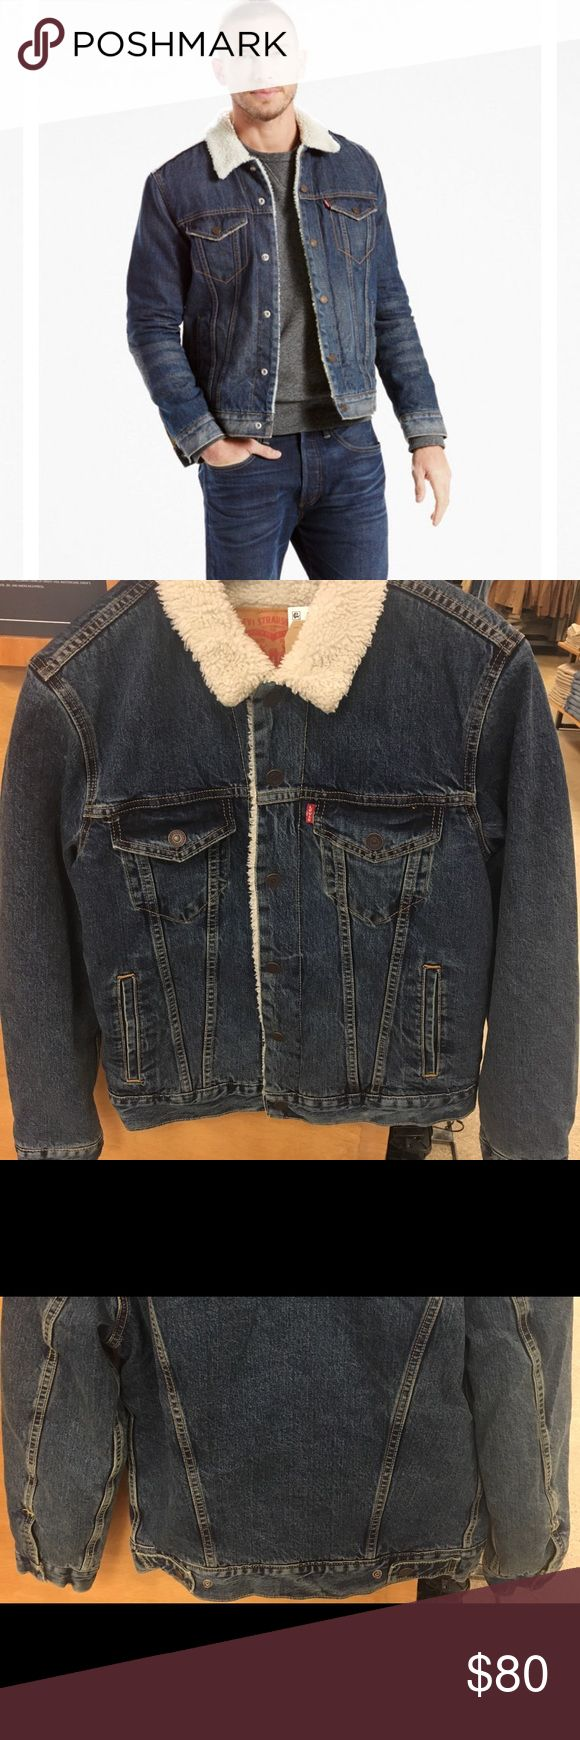 Nwt Men's Levis Sherpa Jacket Size medium  Denim sherpa jacket Brand new with tags Not sure if same exact color as online picture used but same style.  Could fit women as oversized as well  100% Authentic  Smoke free environment Signature by Levi Strauss Jackets & Coats